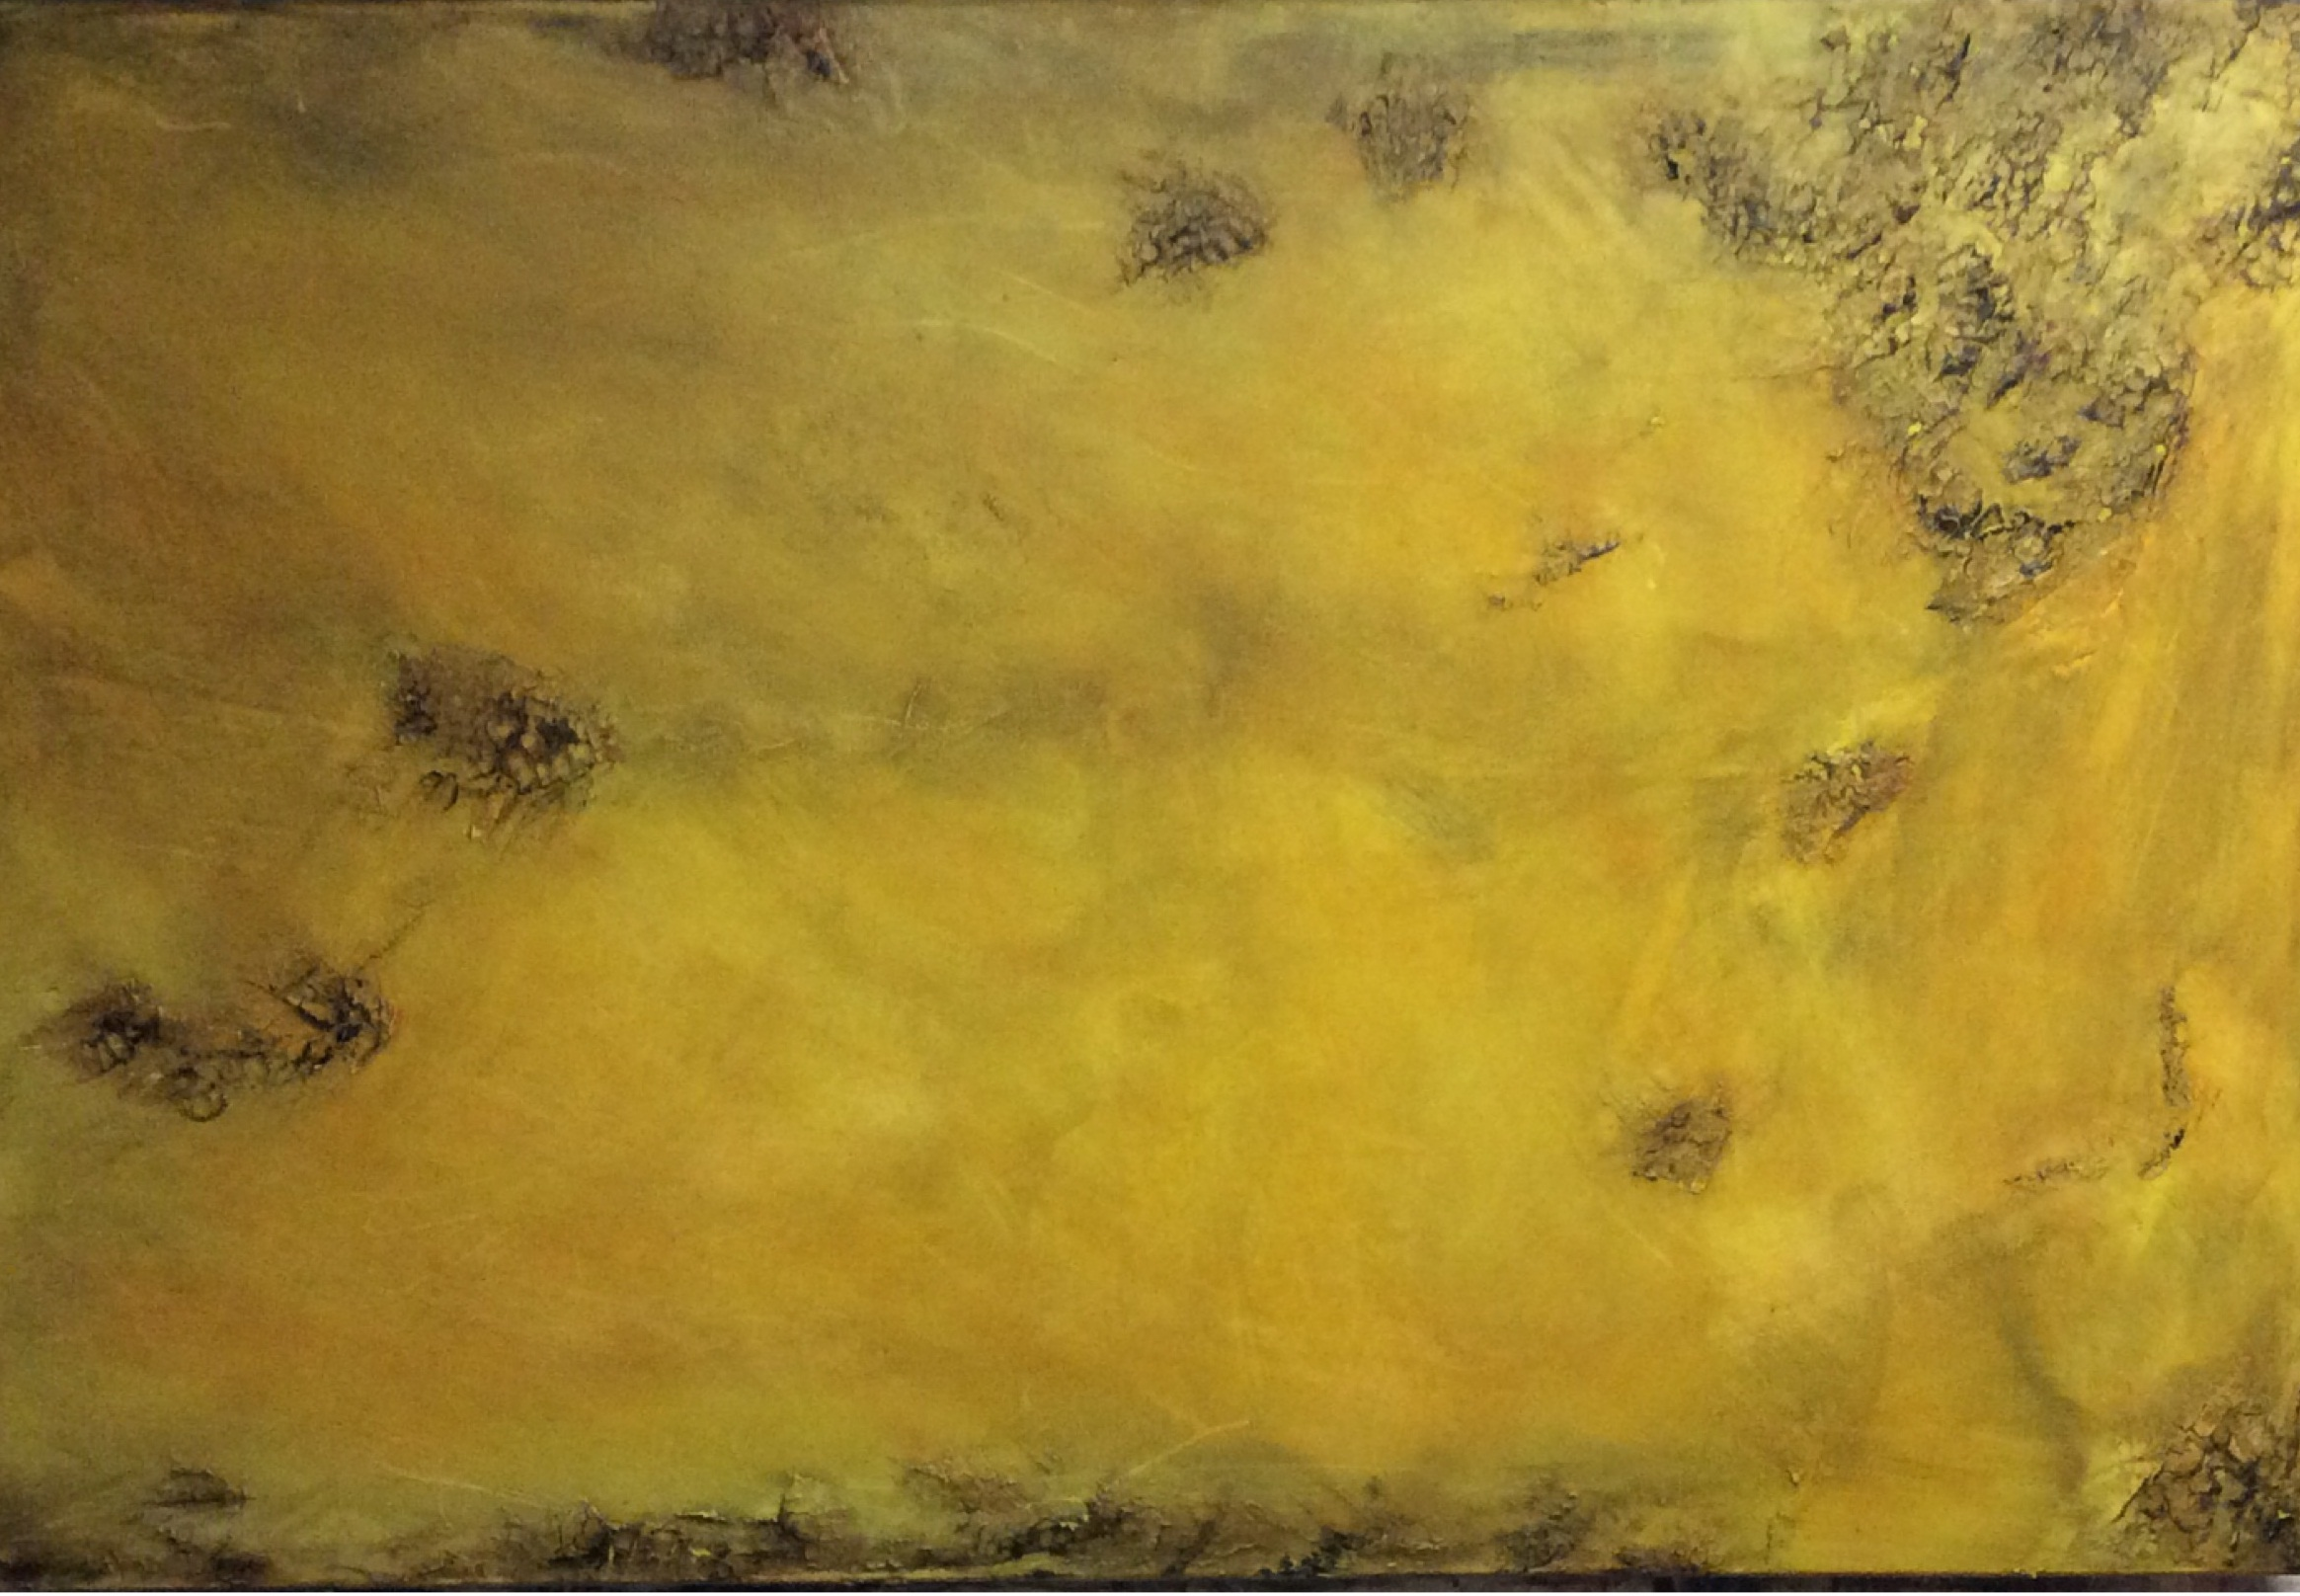 Abstract textured painting in yellow